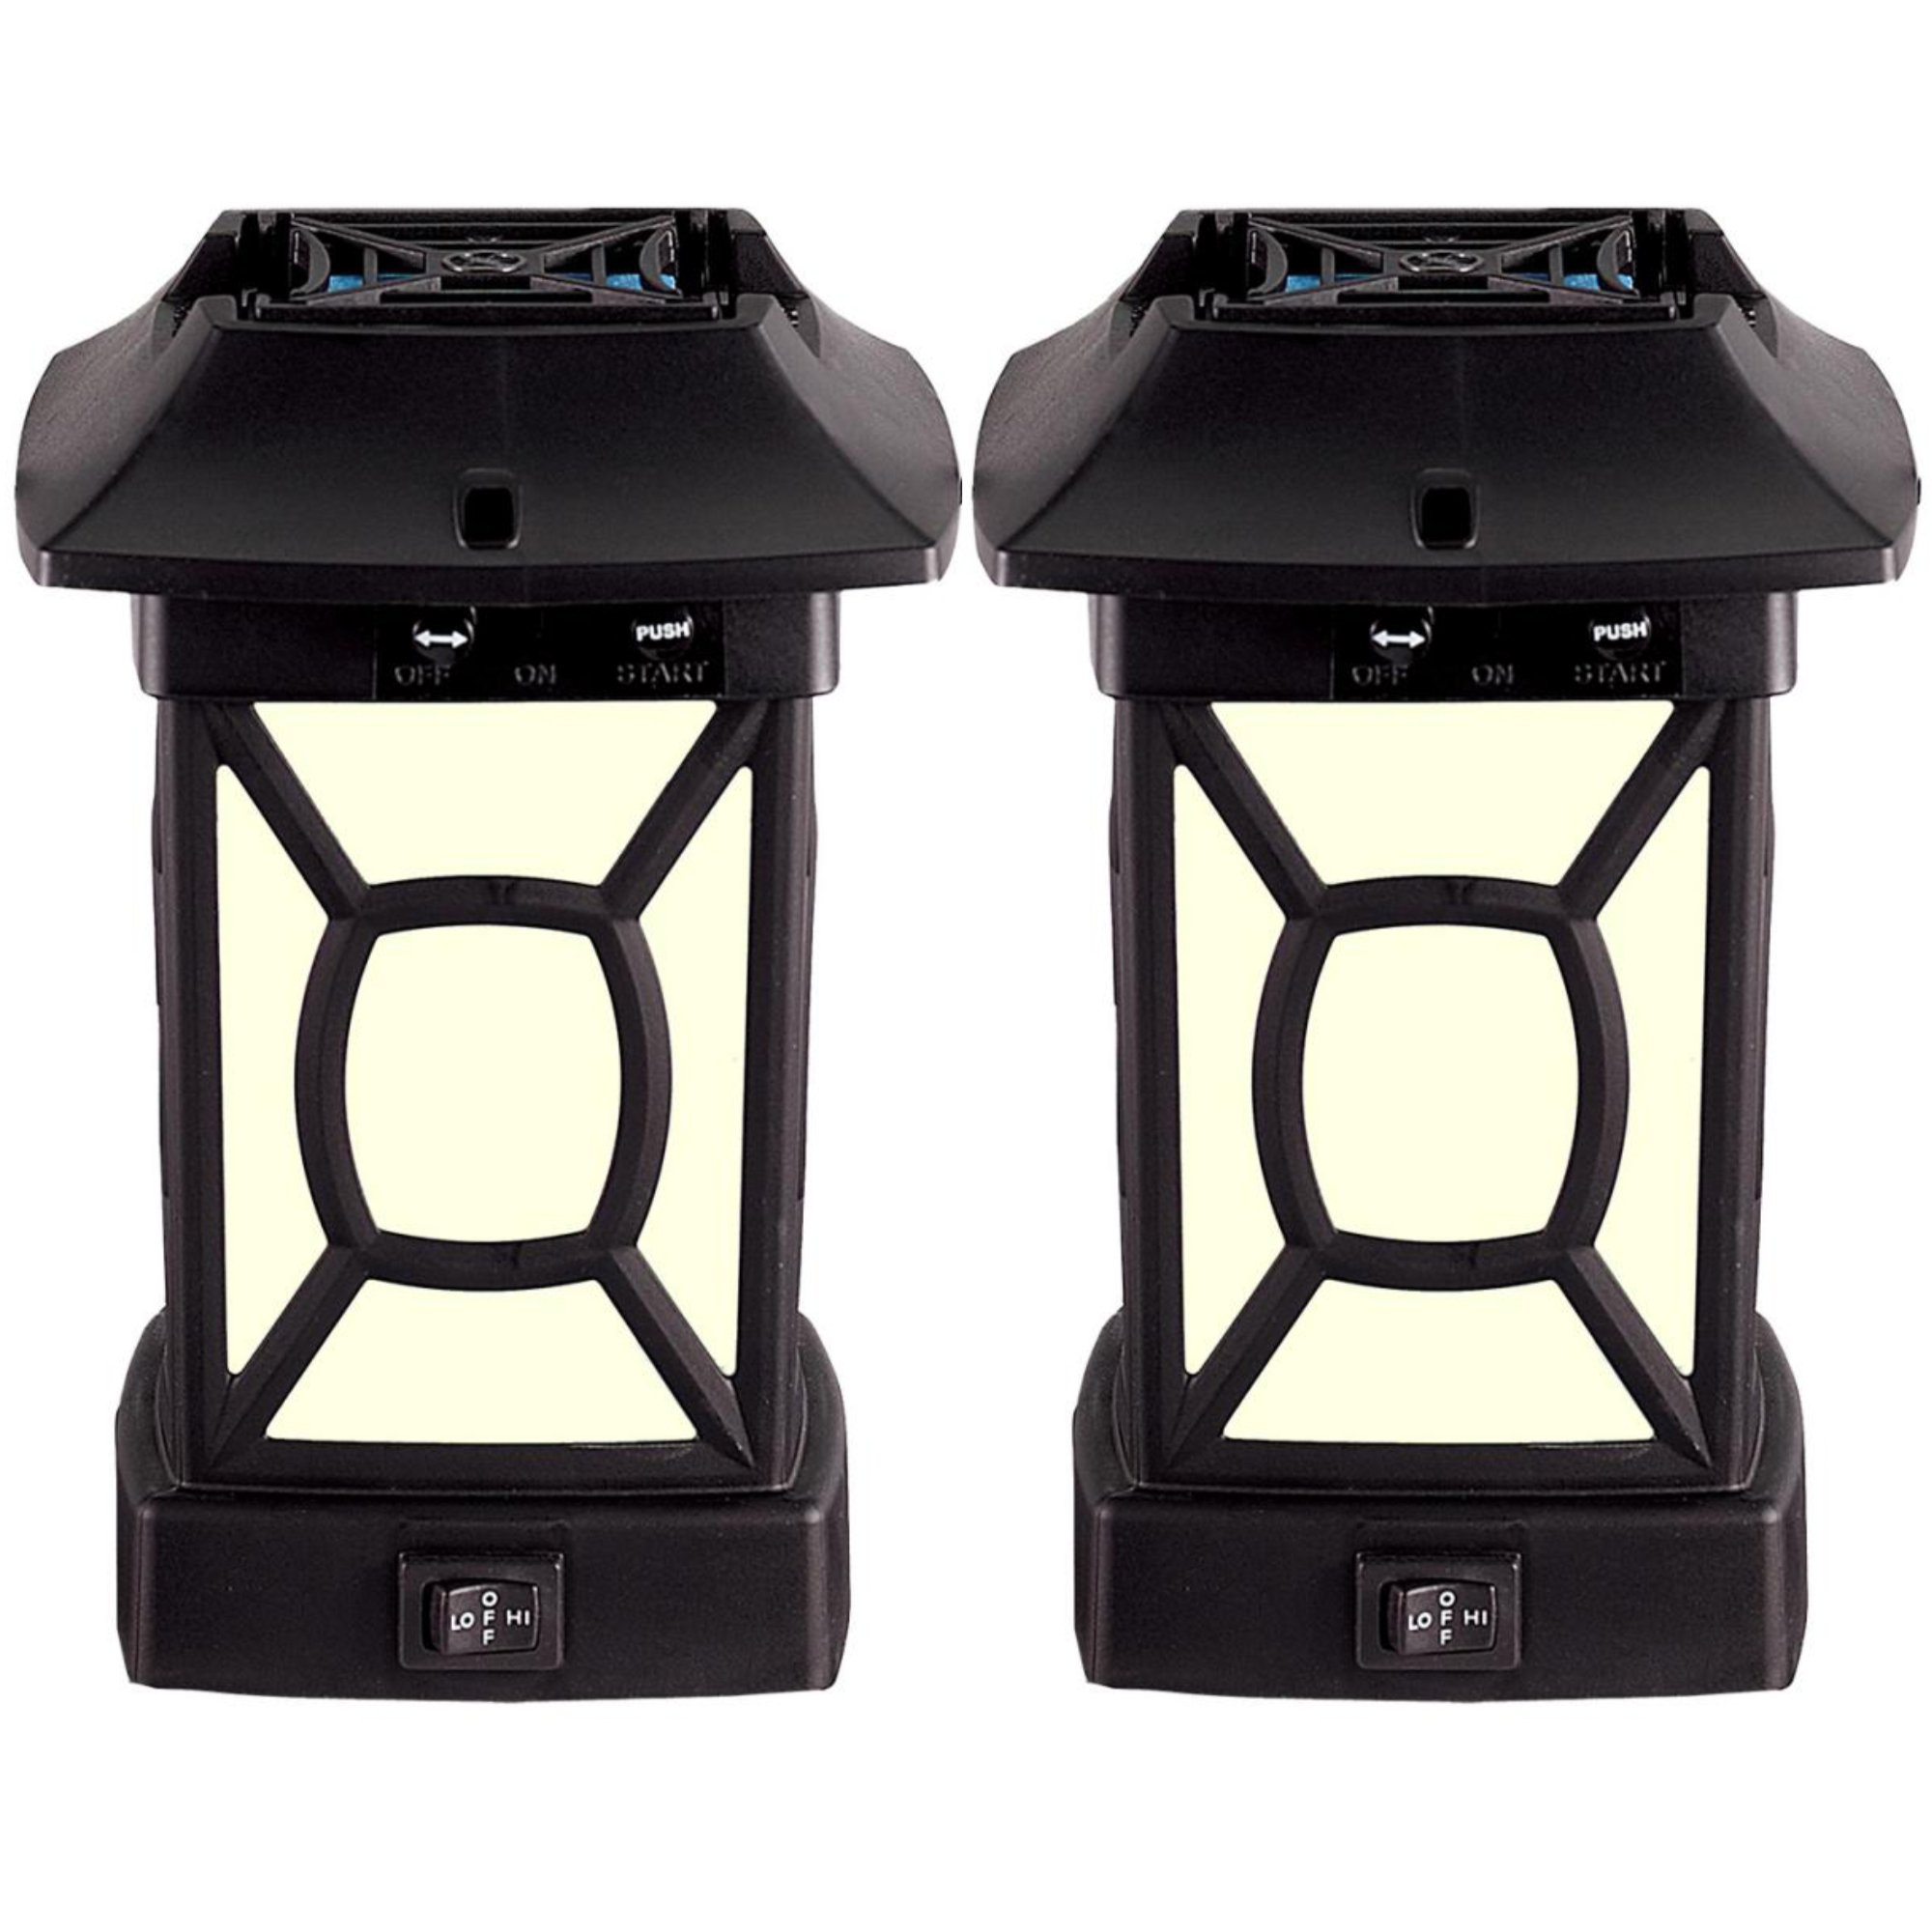 Thermacell Outdoor Mosquito Repeller Plus Lantern, Cambridge Patio Shield, 2-Pack by Thermacell (Image #1)